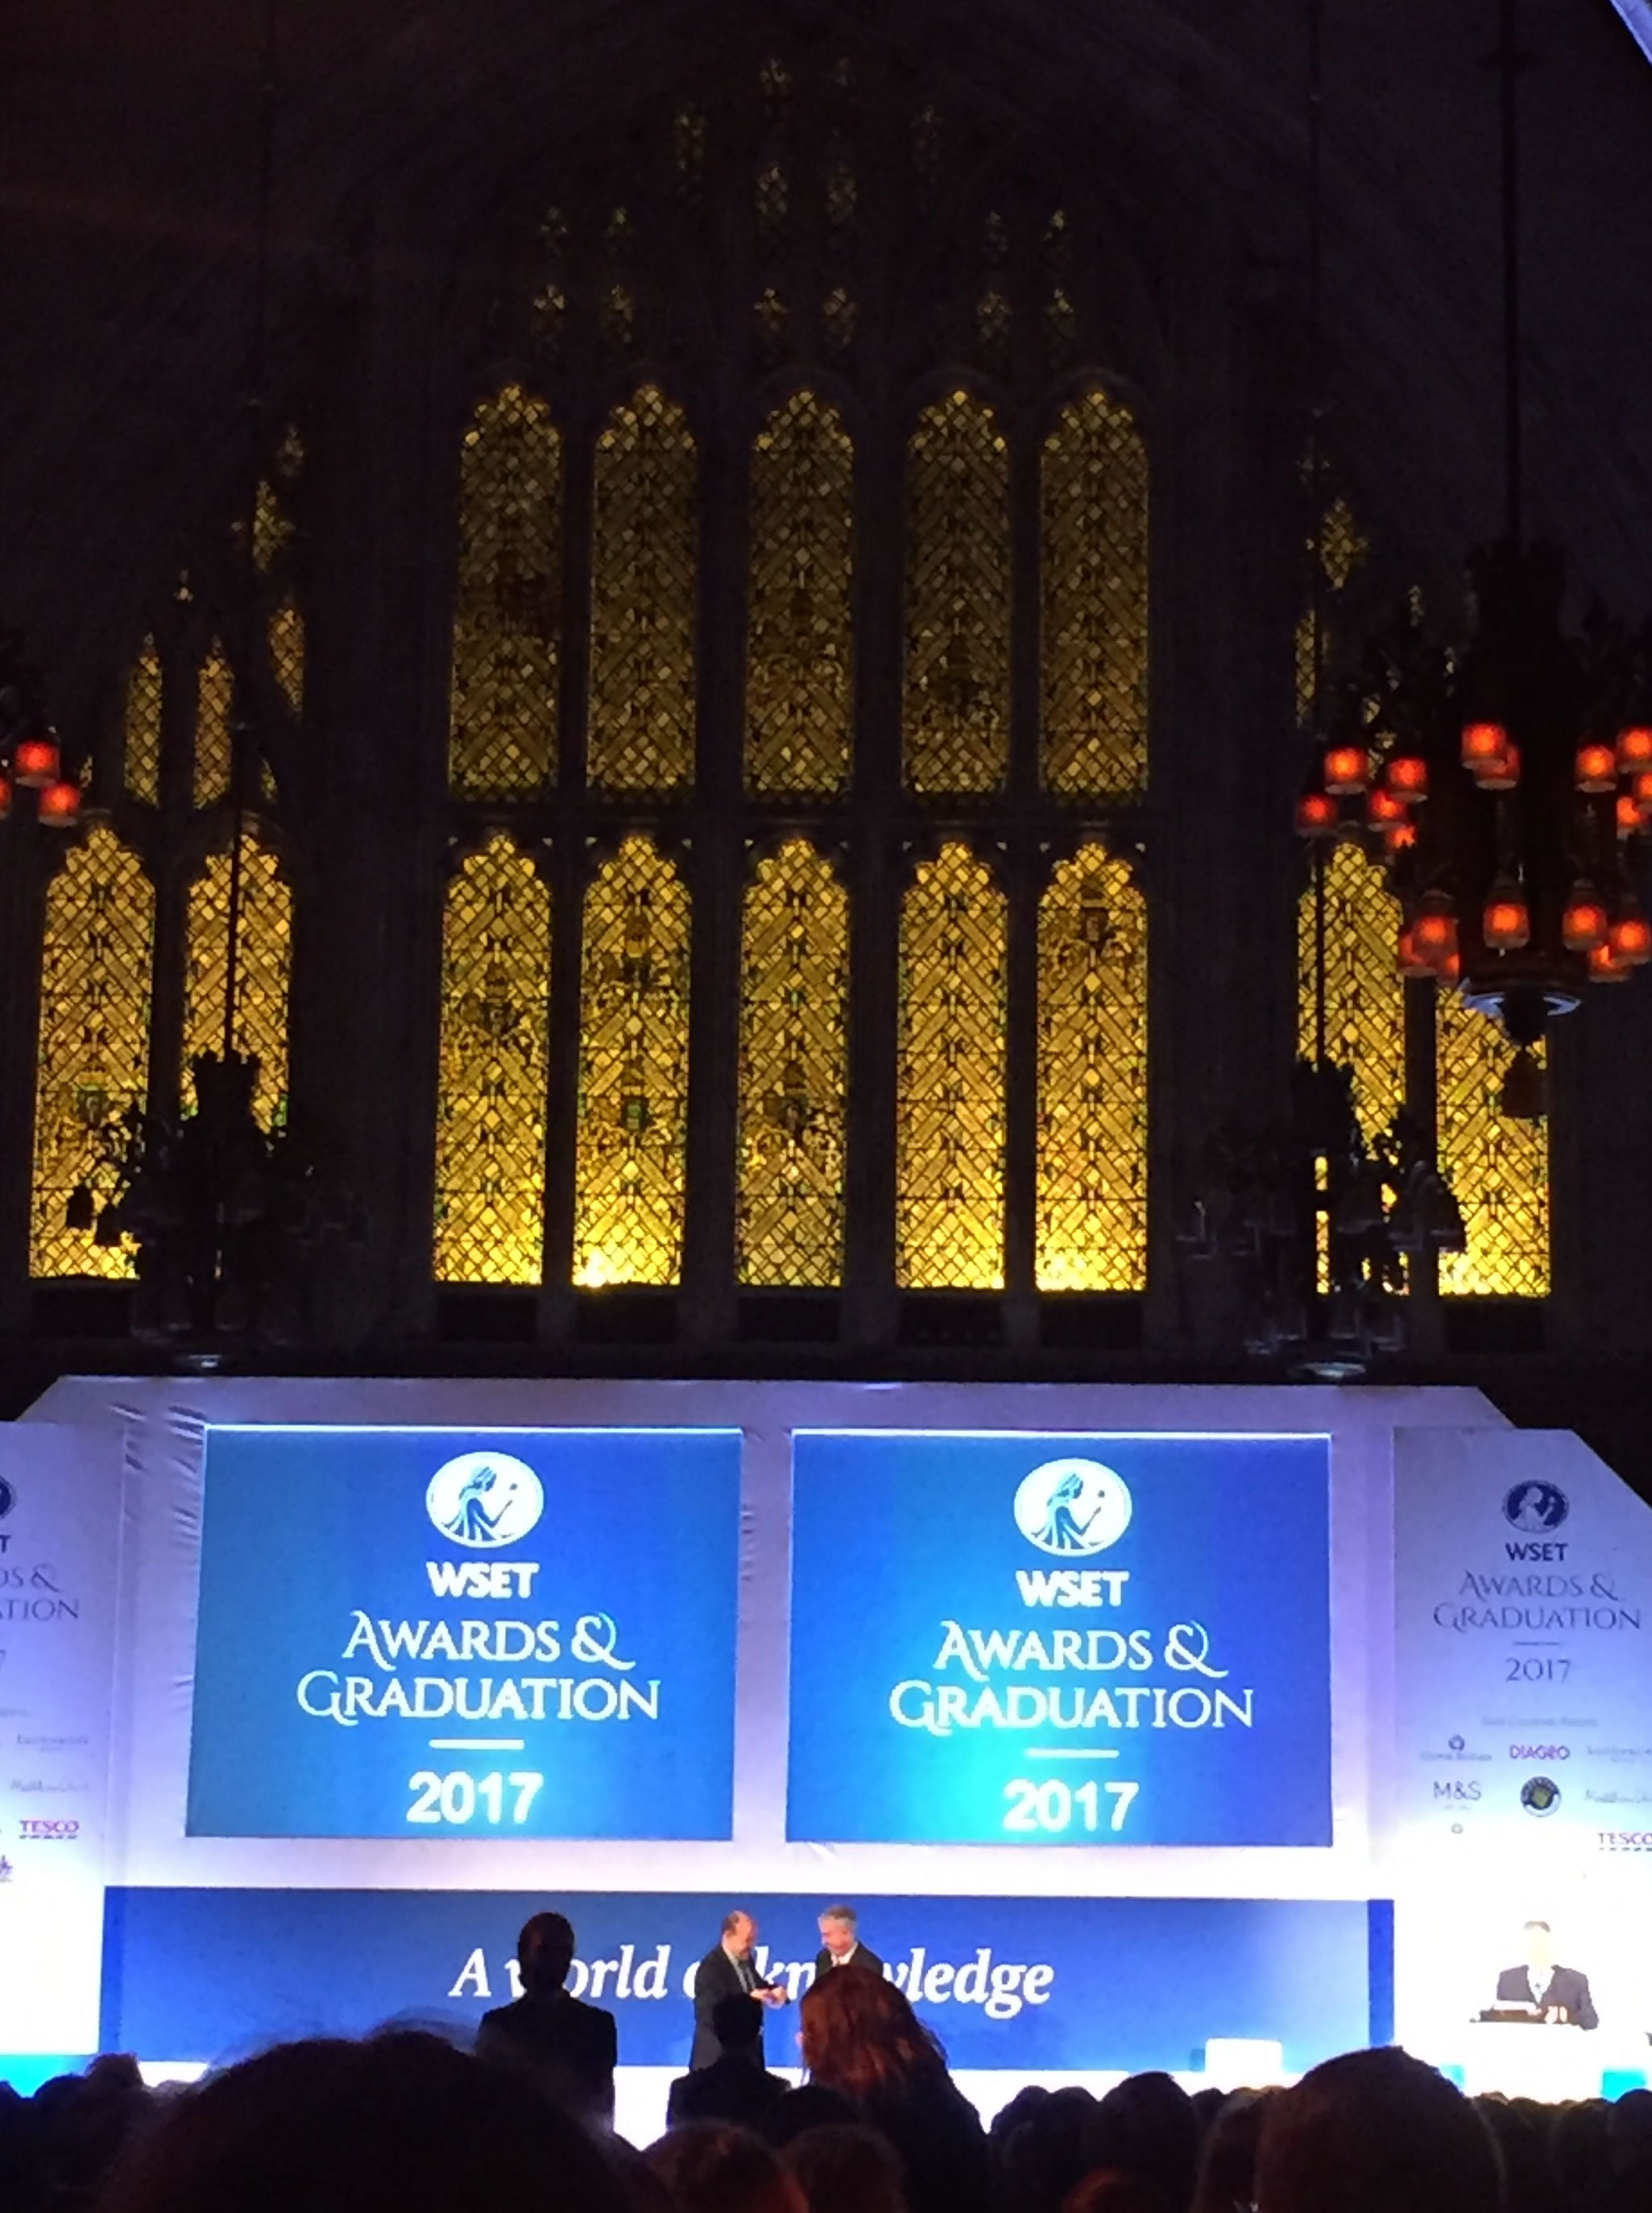 WSET AWARDS & GRADUATION 2017授賞式